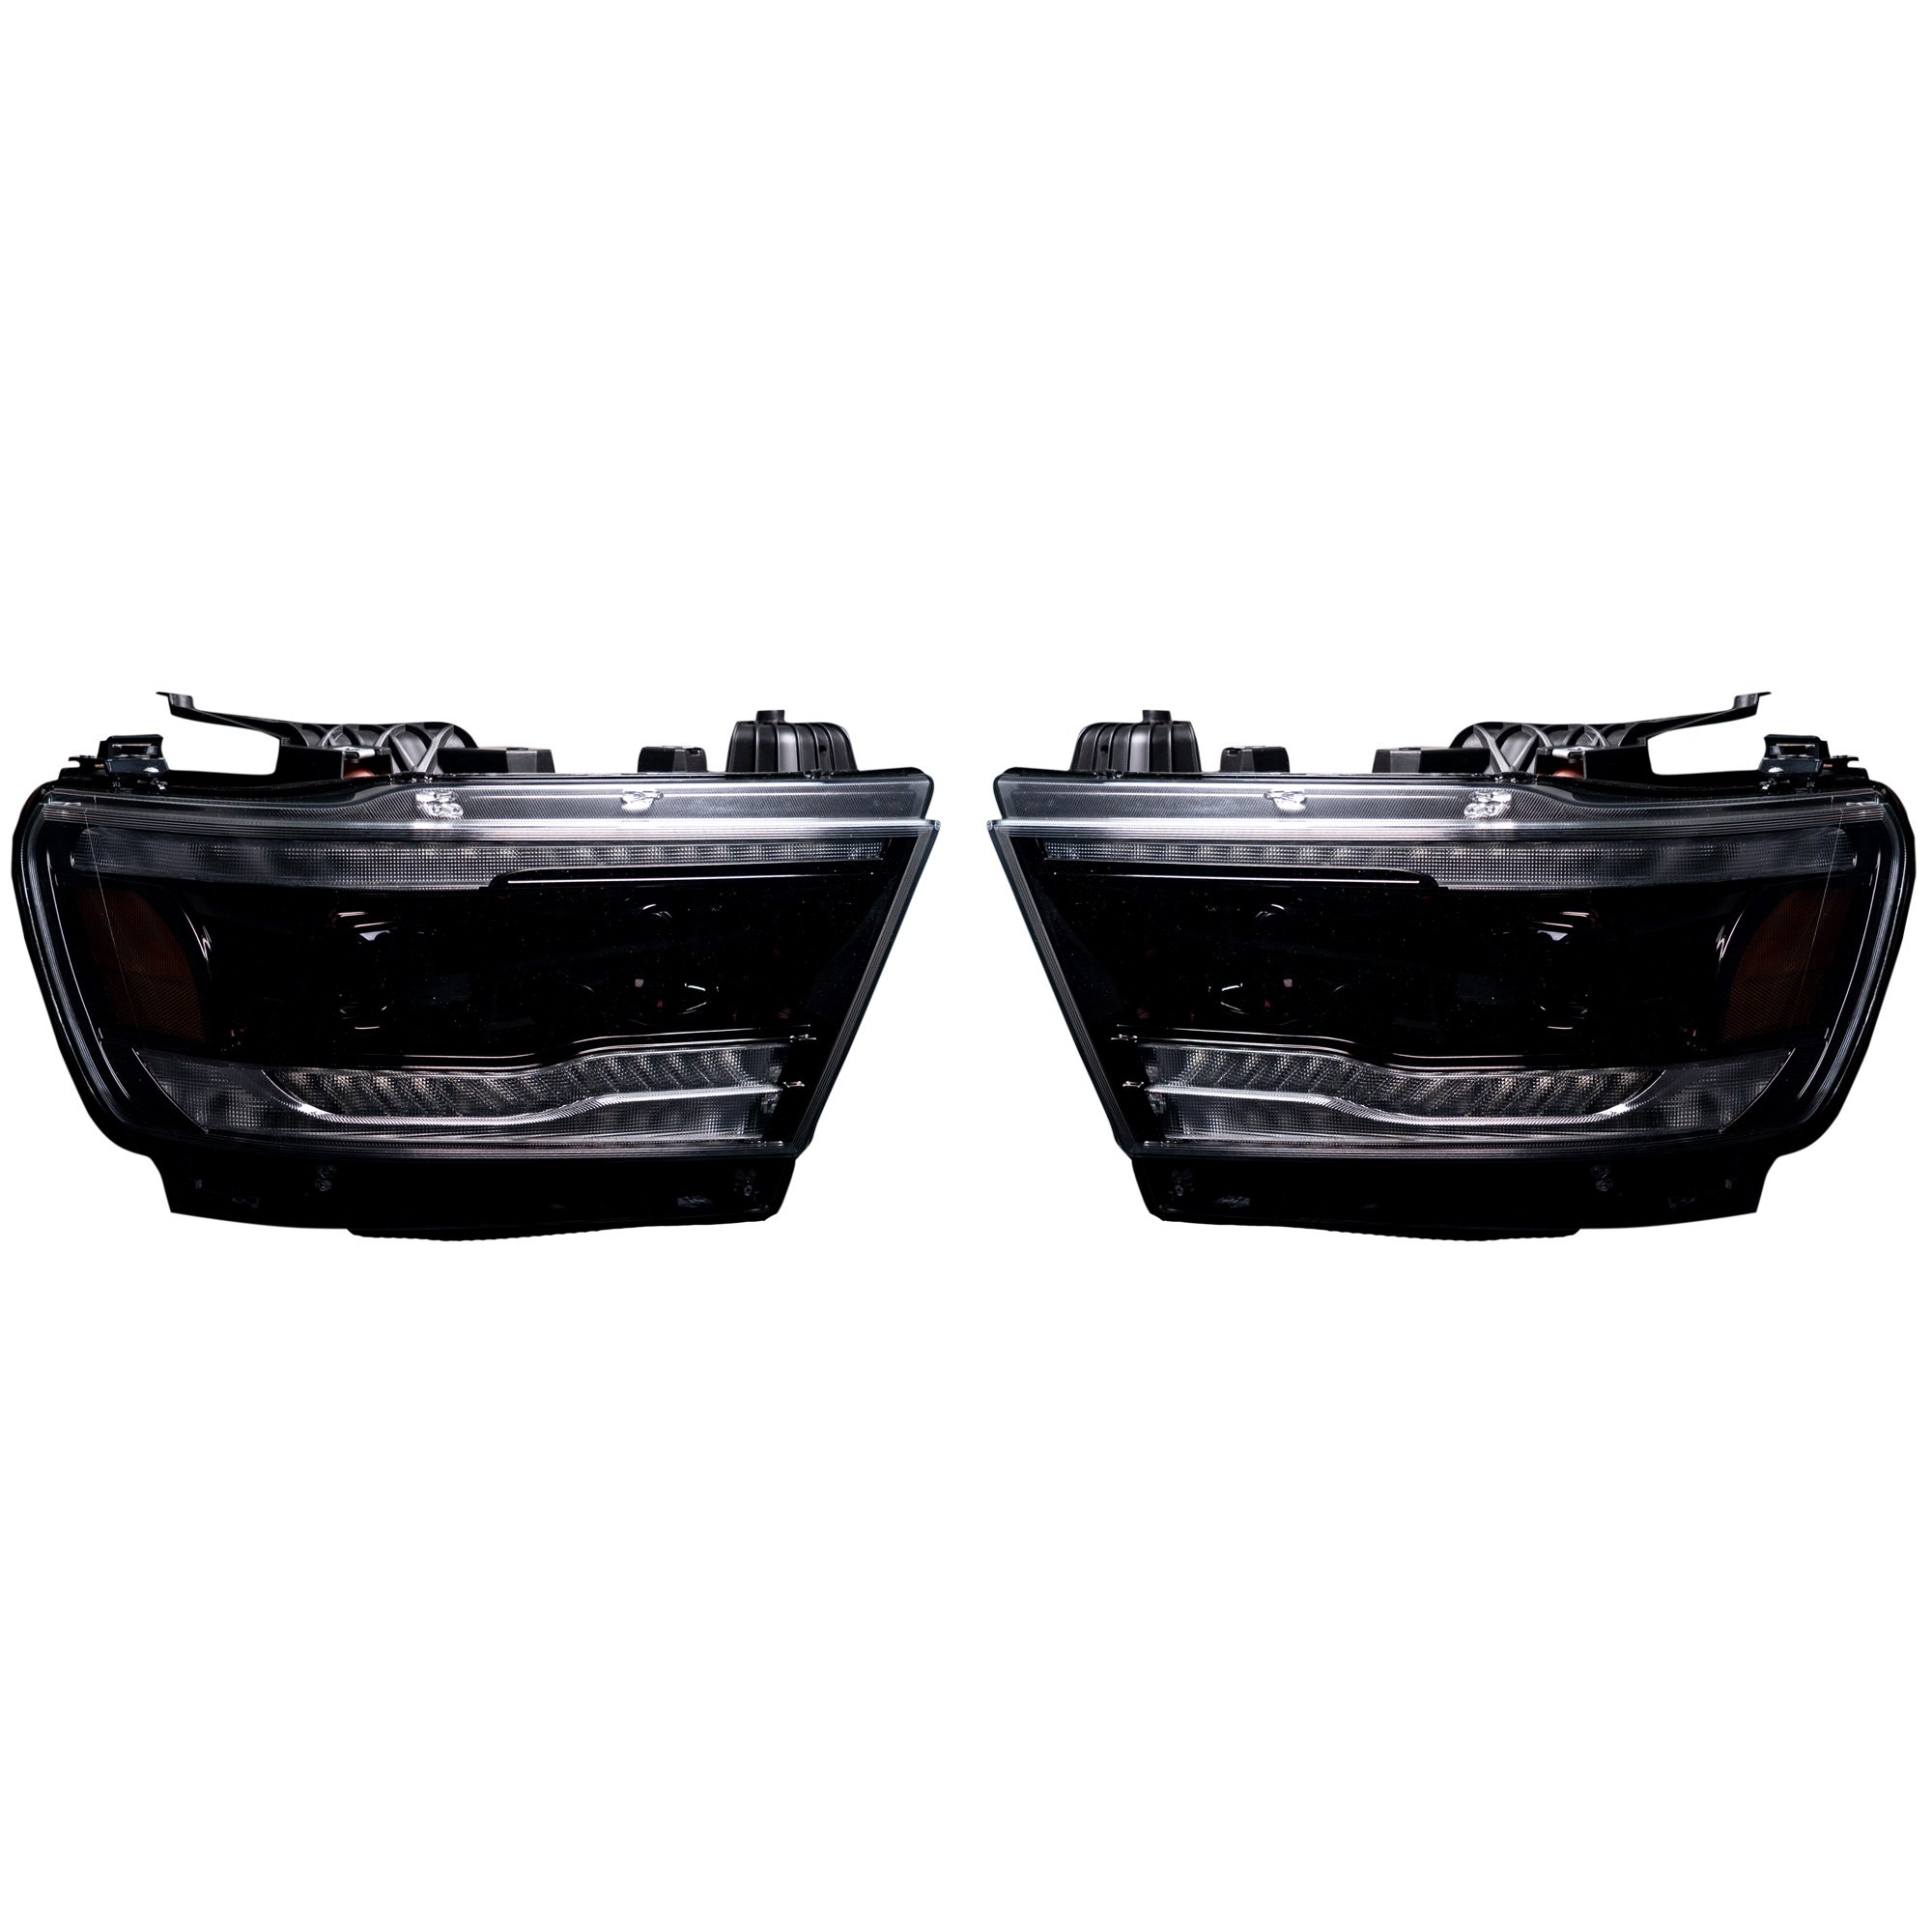 Dodge Ram 1500 19 20 5th Gen Led Hi Low Beam Projector Headlights Oled Drl Scanning Switchback Led Signals Smoked Black Recon